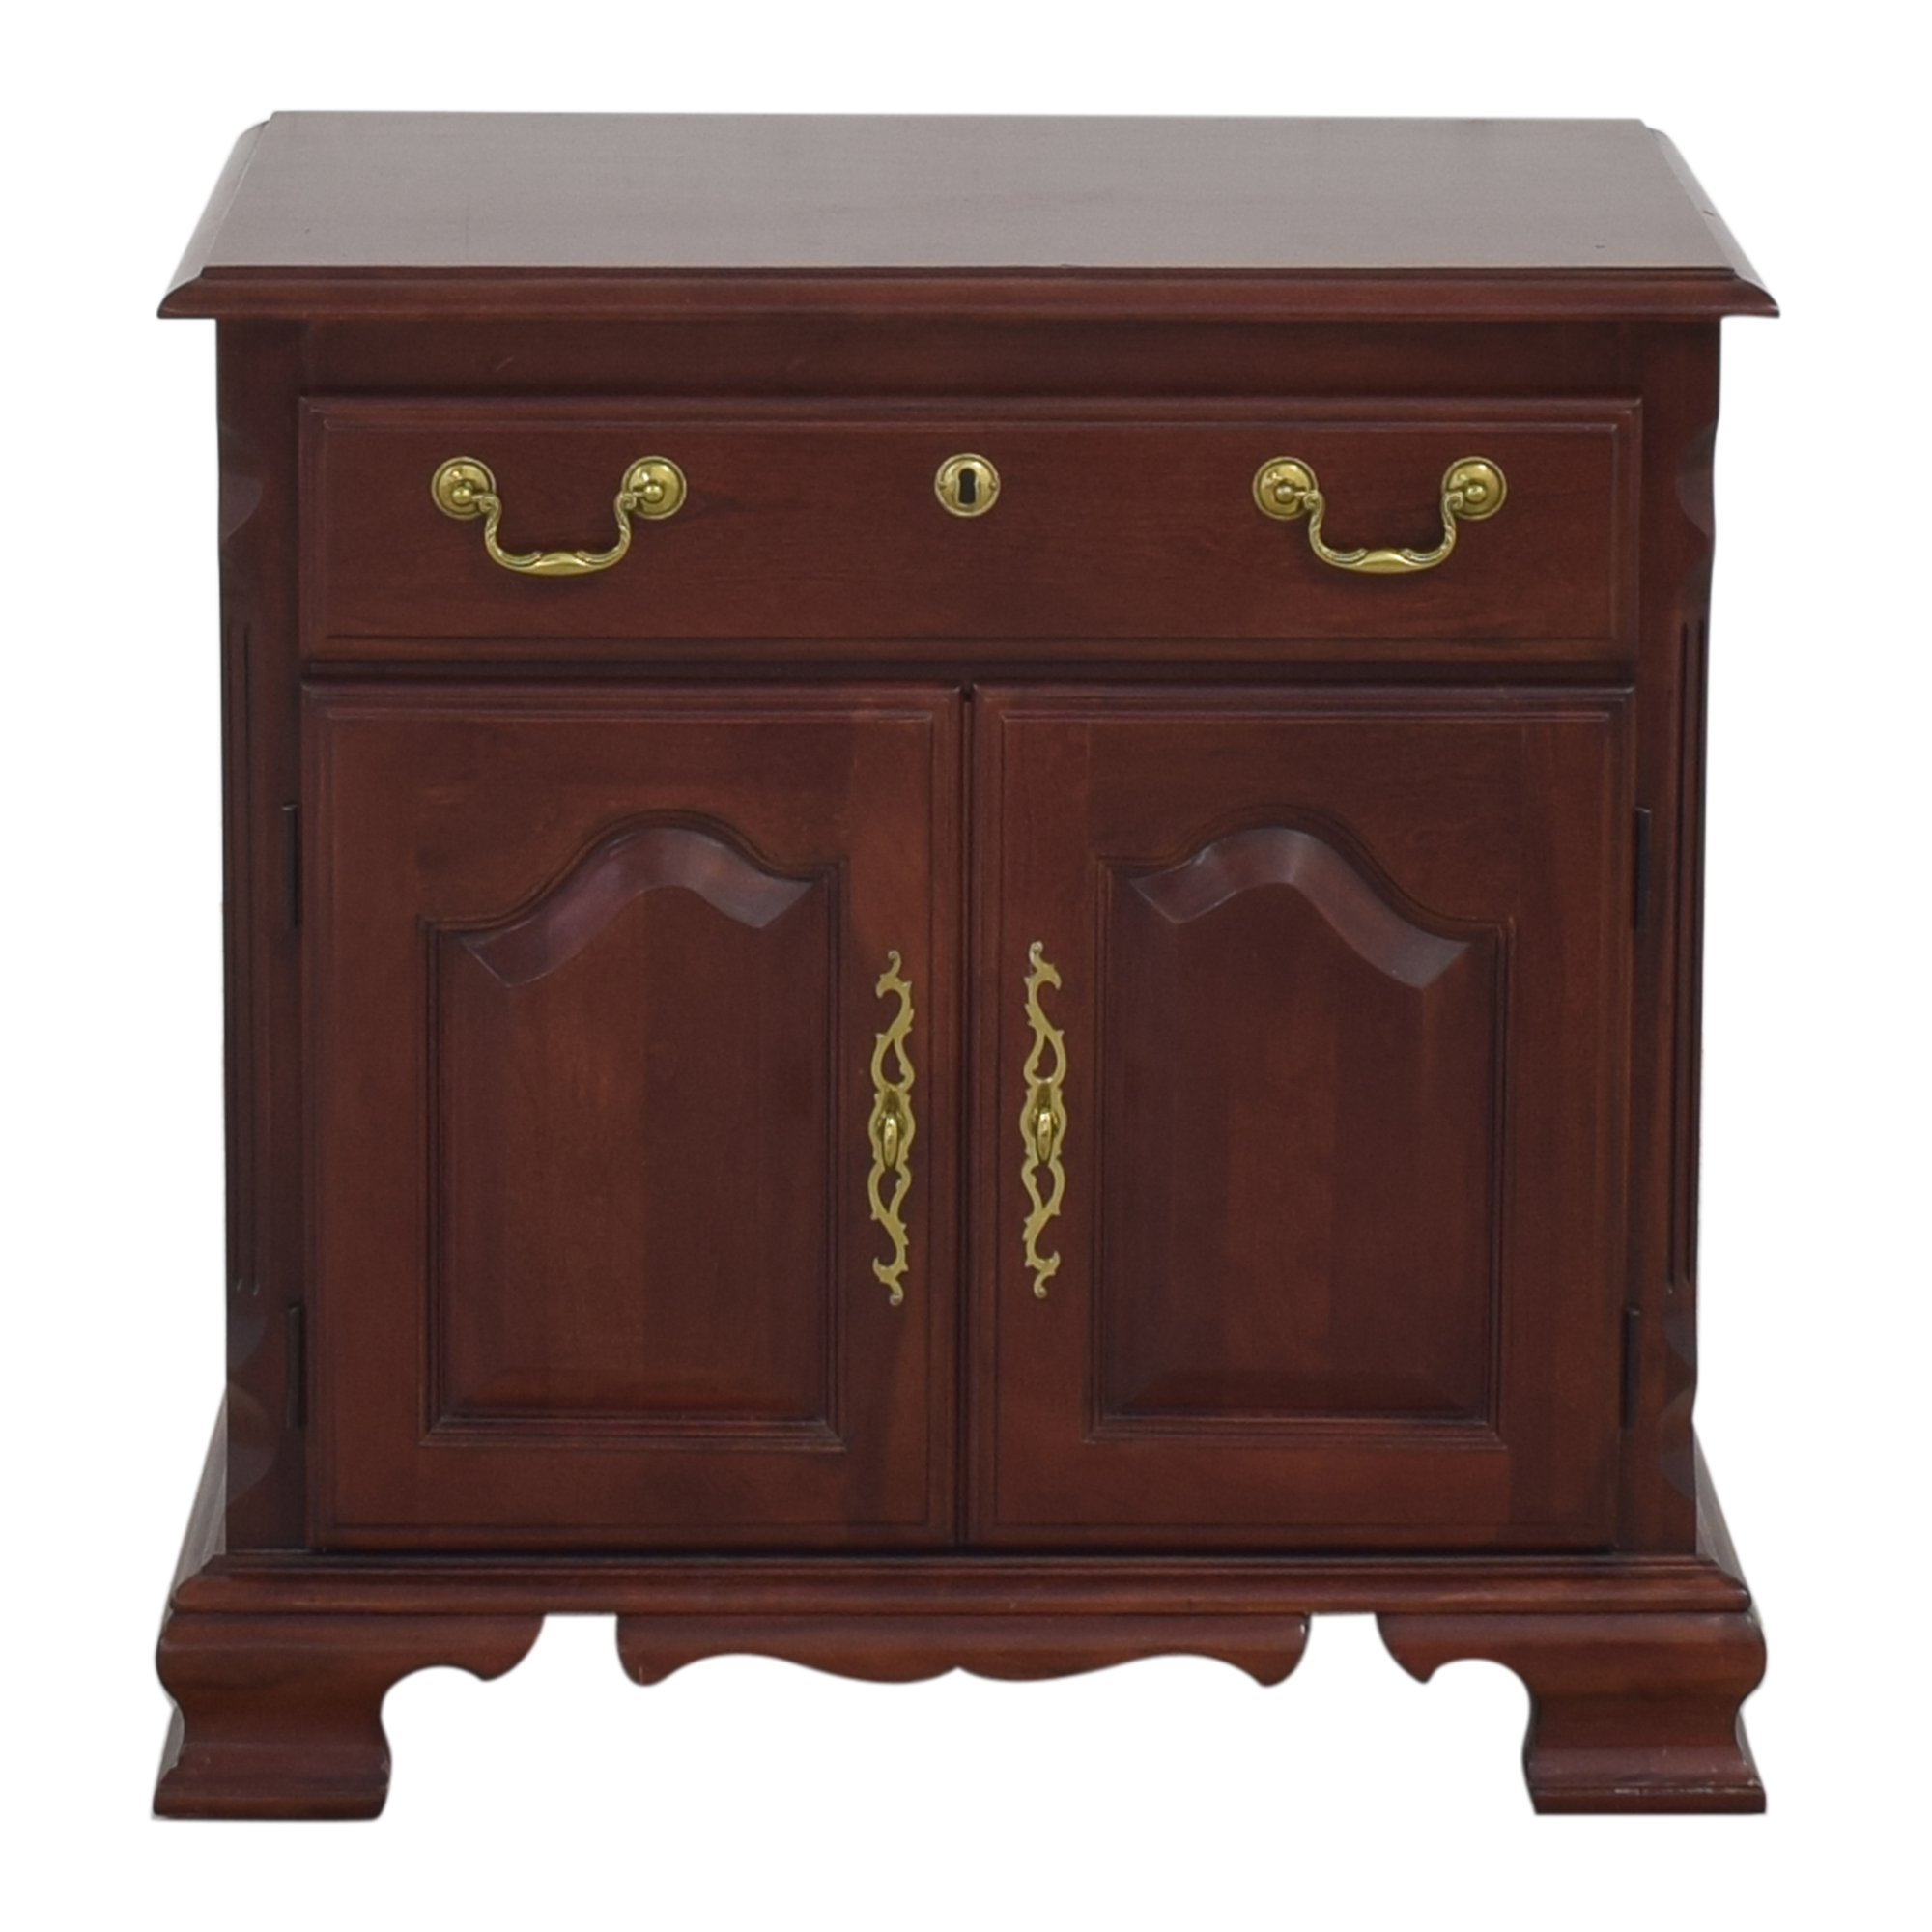 Pennsylvania House Pennsylvania House Nightstand for sale